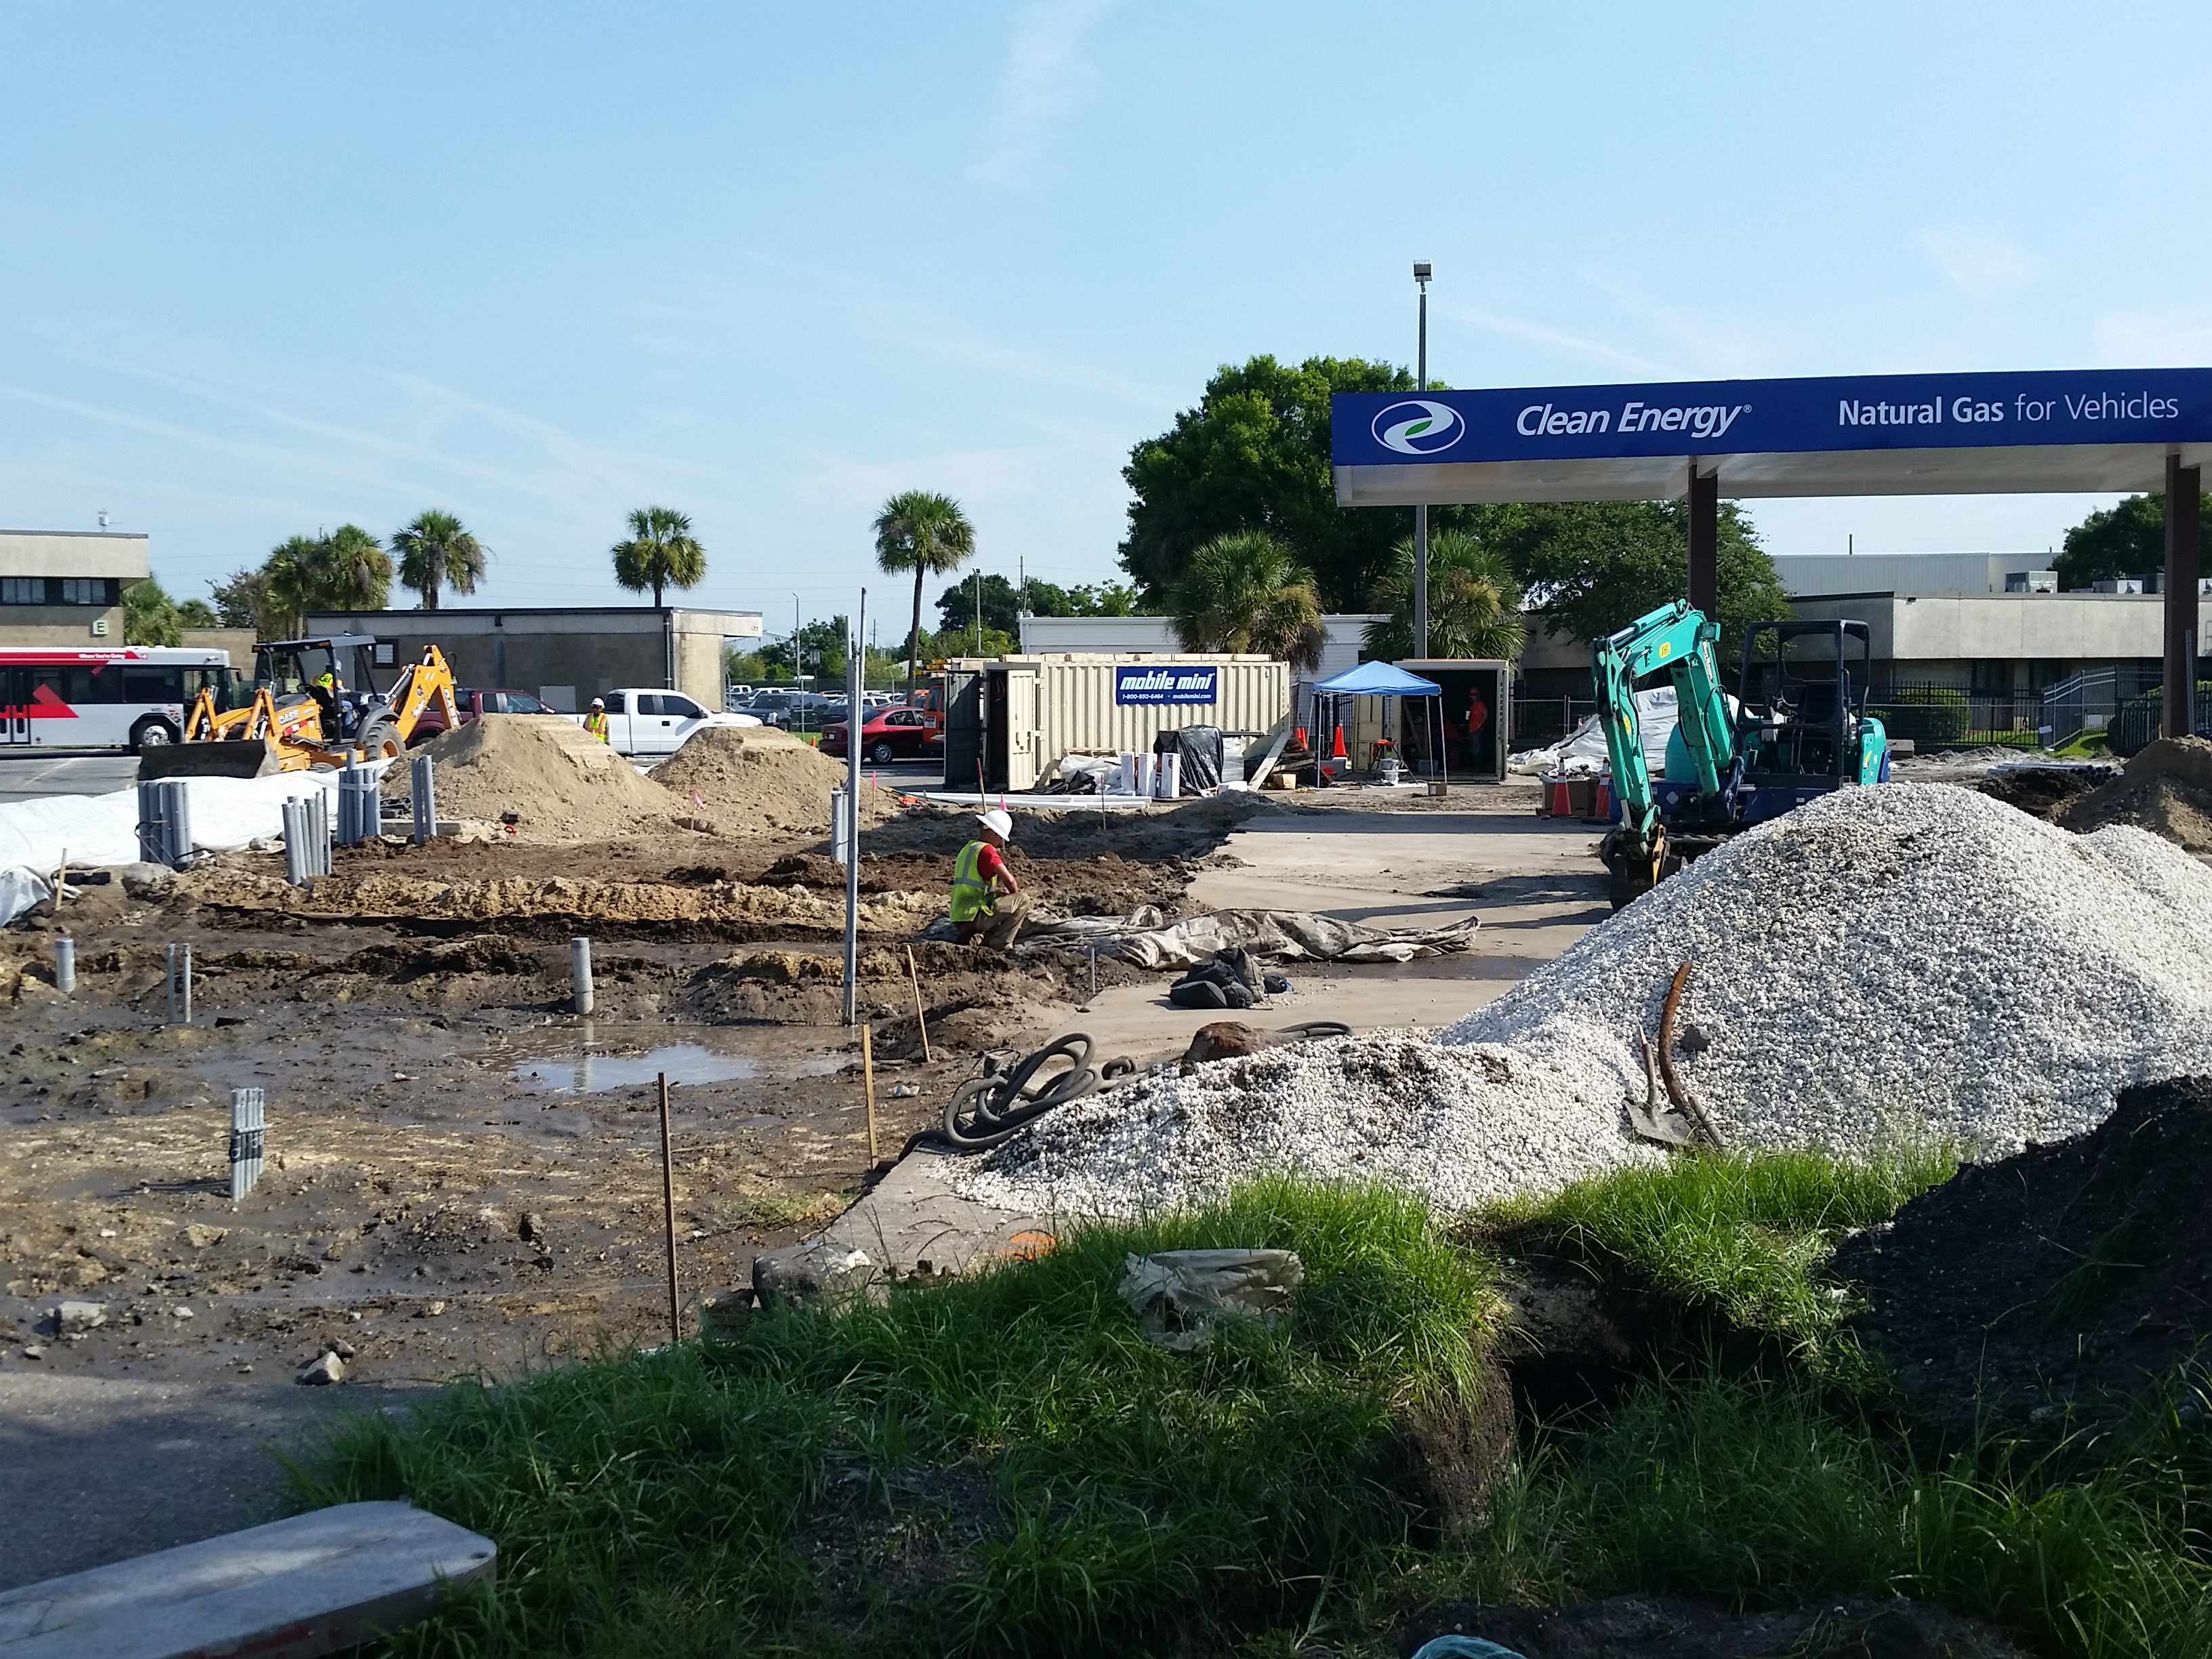 Installation of Compressed Natural Gas (CNG) Fueling Station